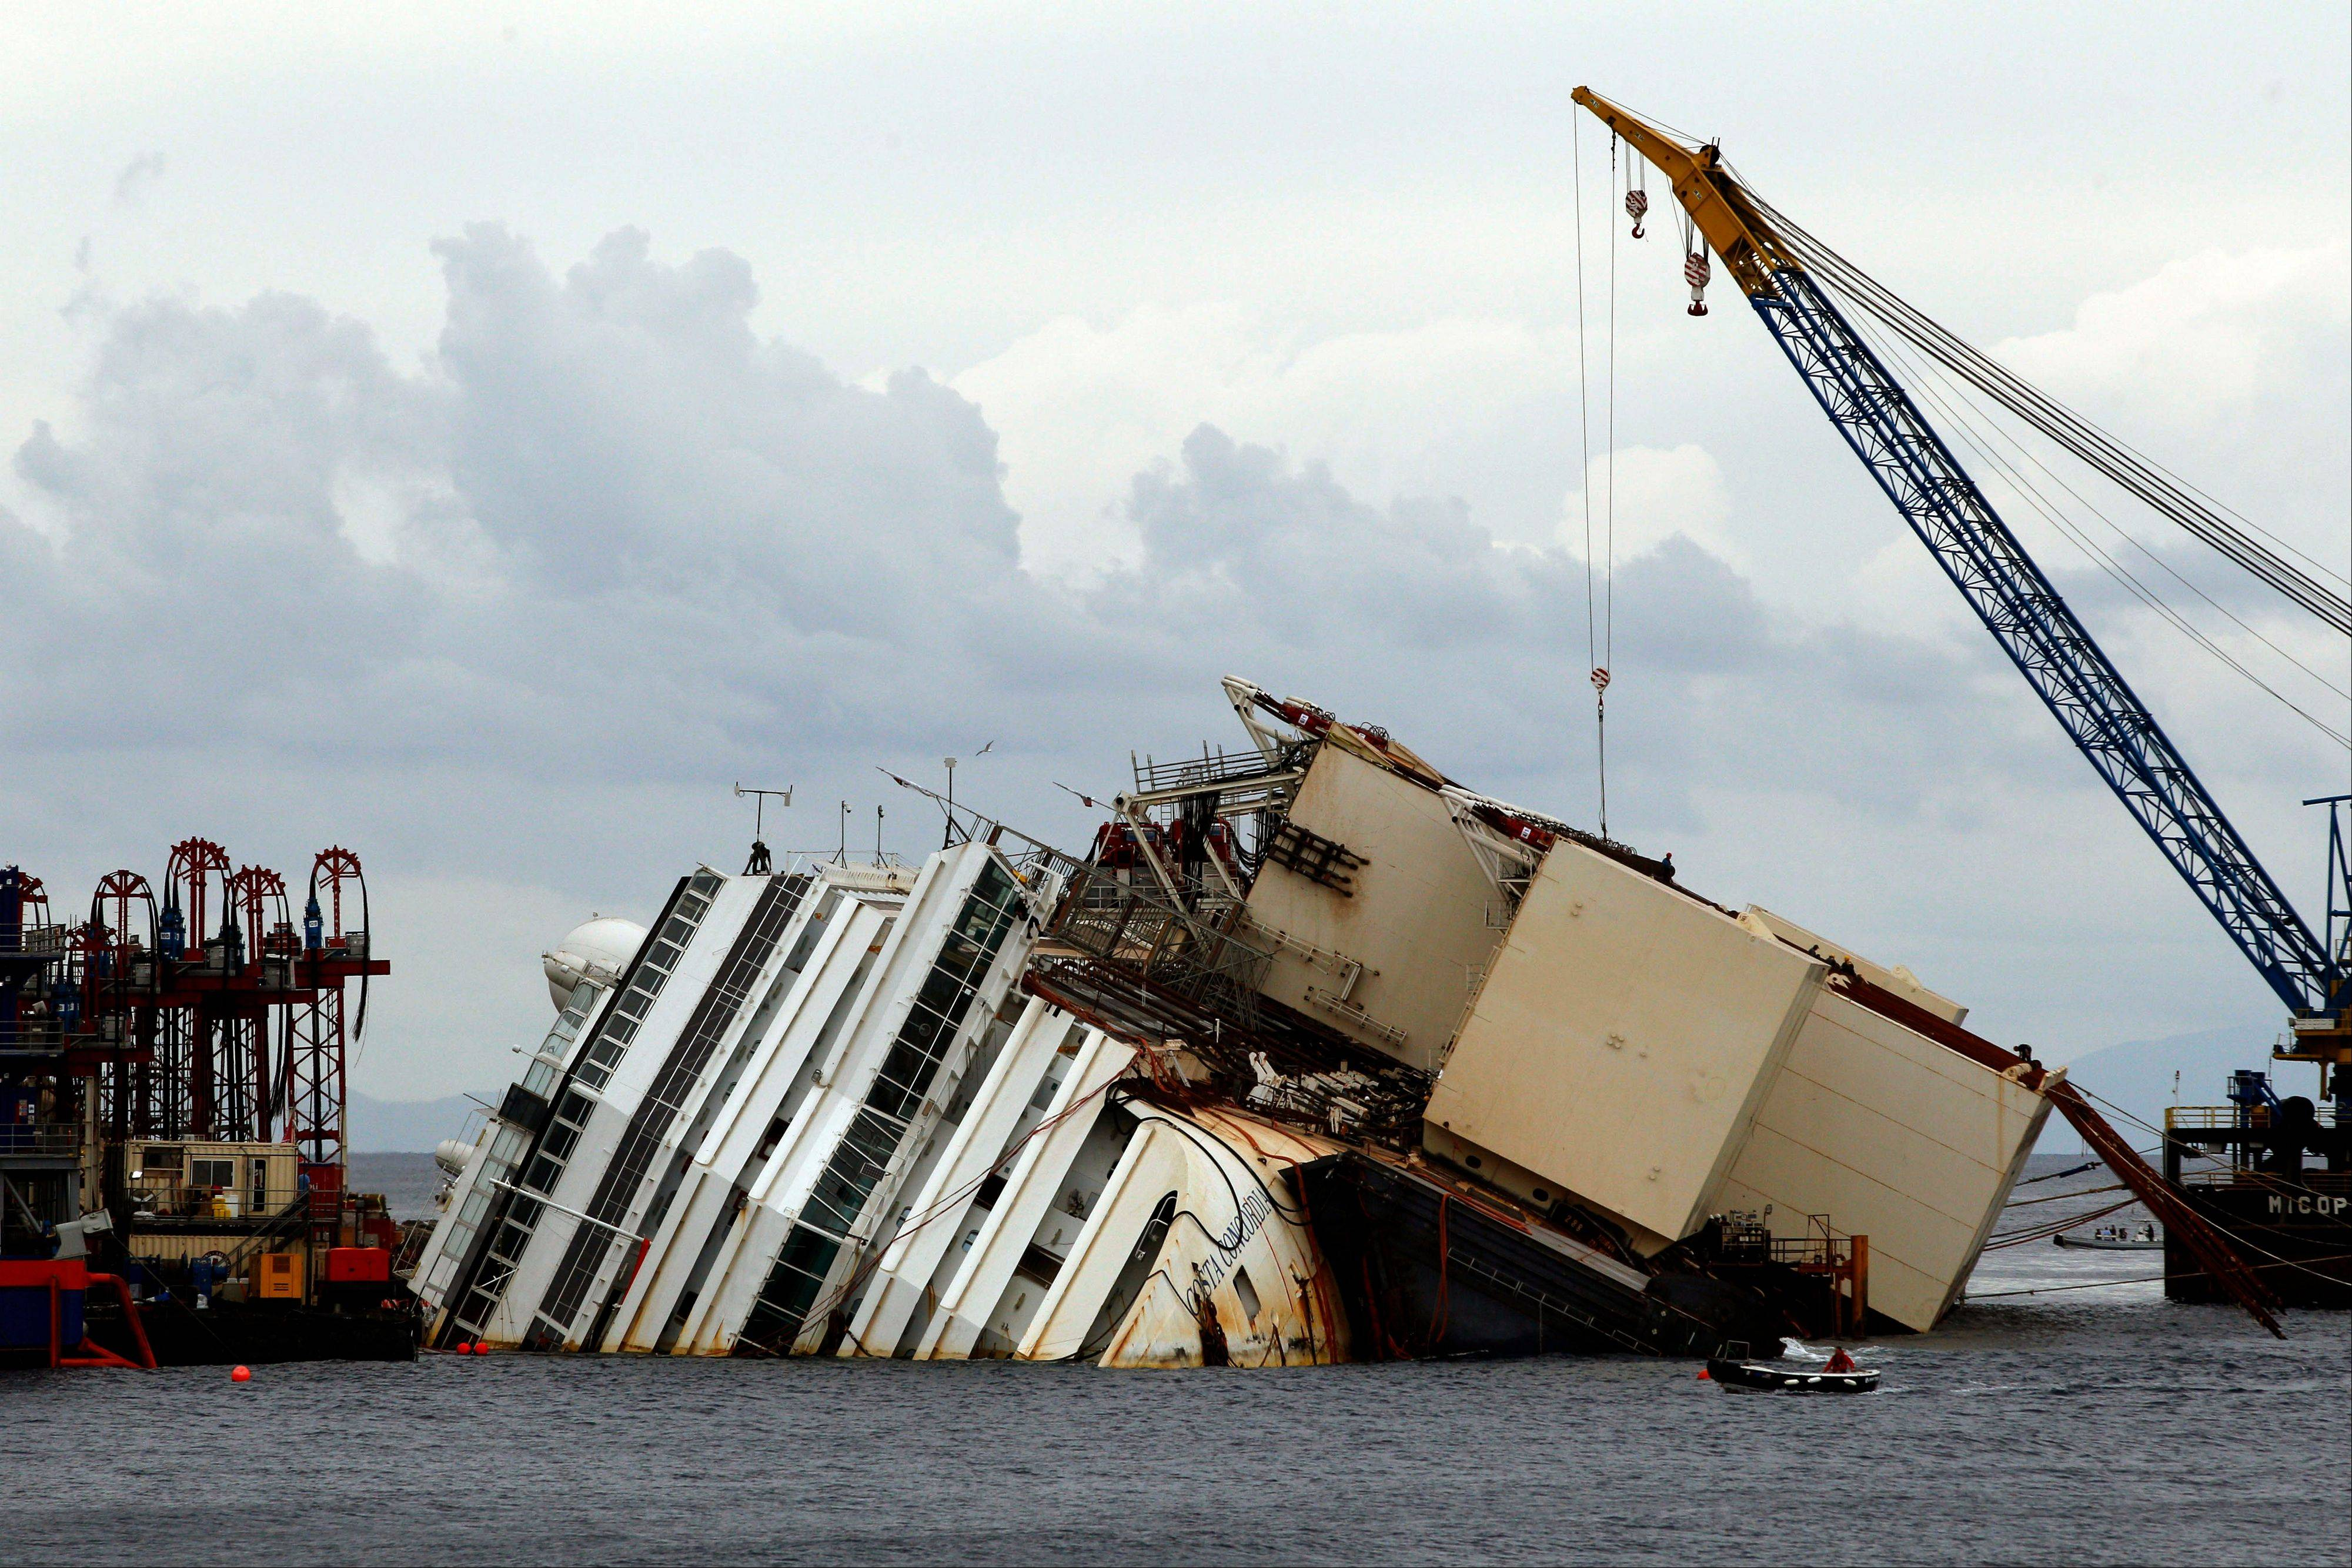 The Costa Concordia ship lies on its side on the Tuscan Island of Giglio, Italy, Sunday. Authorities have given the final go-ahead for a daring attempt today to pull upright the crippled cruise liner from its side, a make-or-break engineering feat that has never before been tried in such conditions.